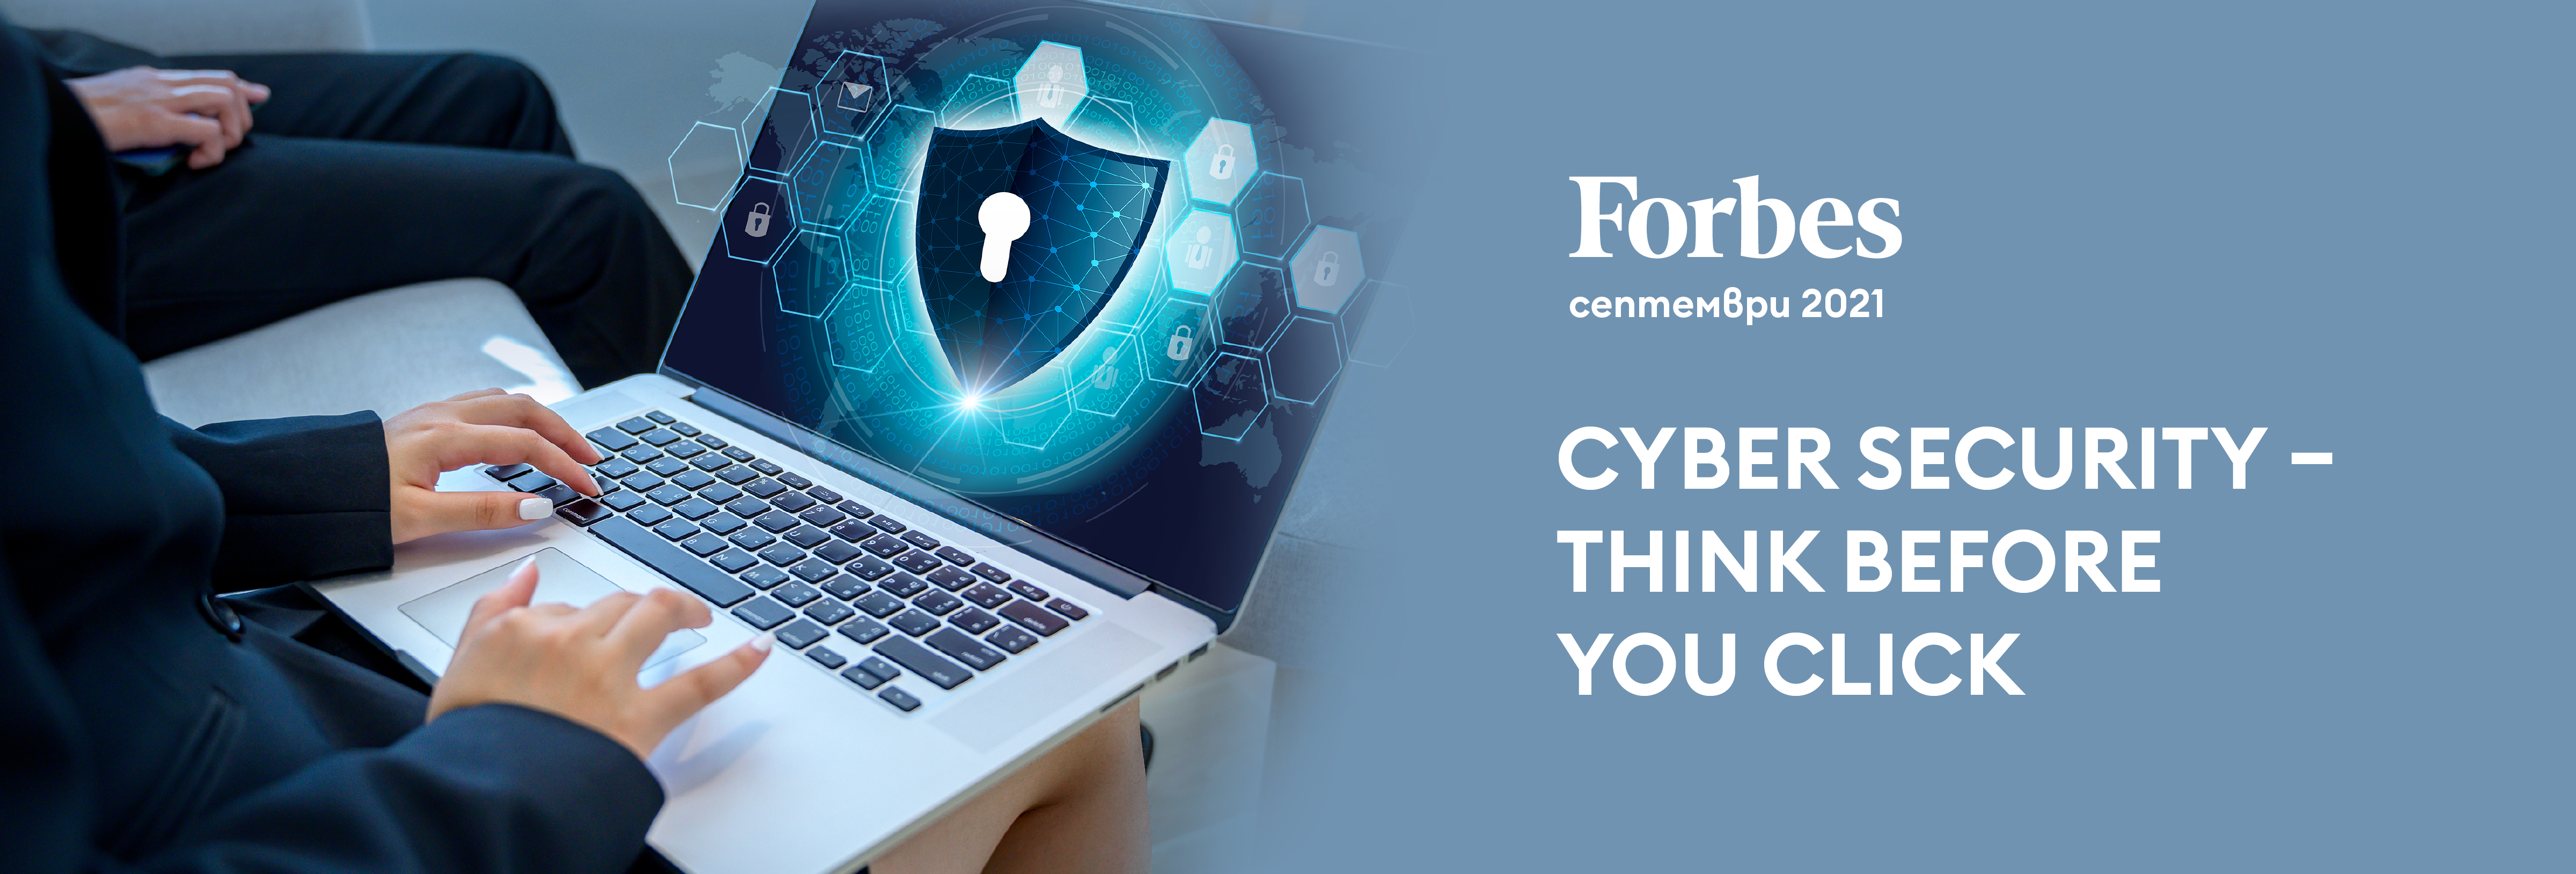 Forbes_Cyber Security